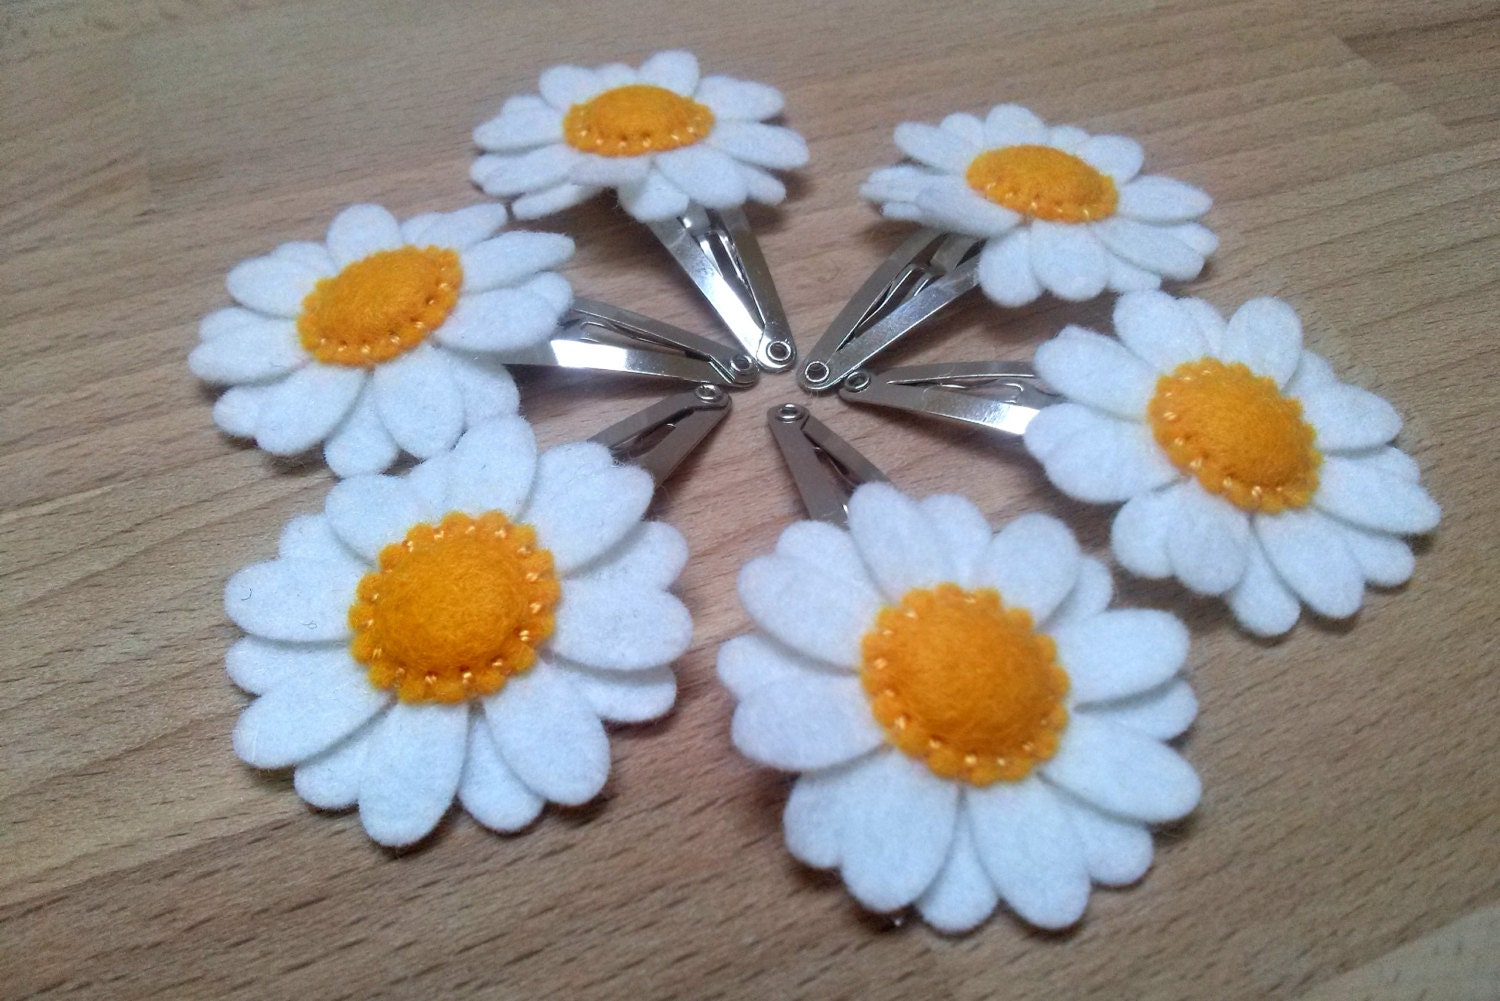 Find great deals on eBay for daisy hair clips. Shop with confidence.